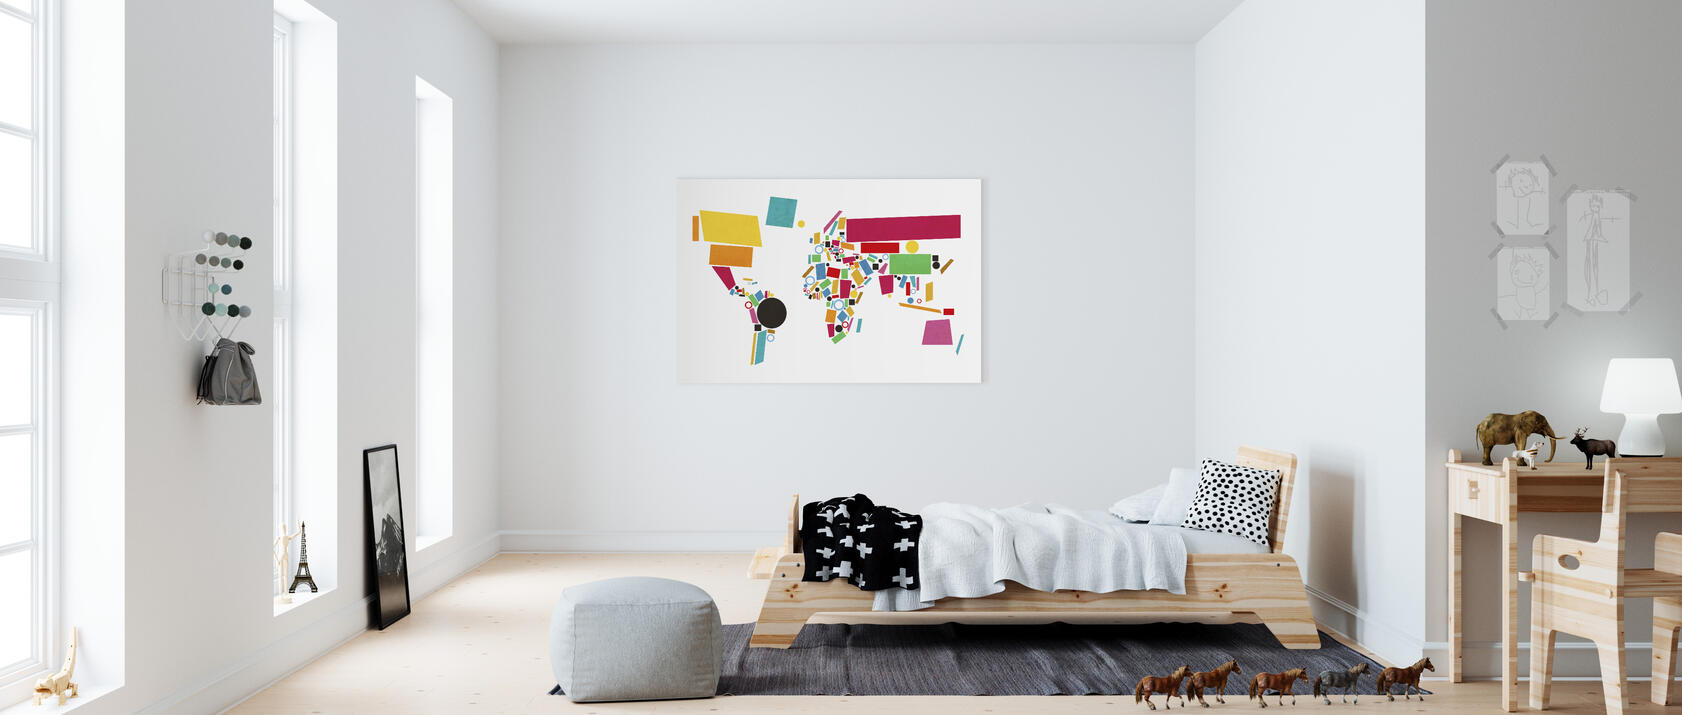 abstract world map squares 2 impression sur toile en ligne pas cher photowall. Black Bedroom Furniture Sets. Home Design Ideas